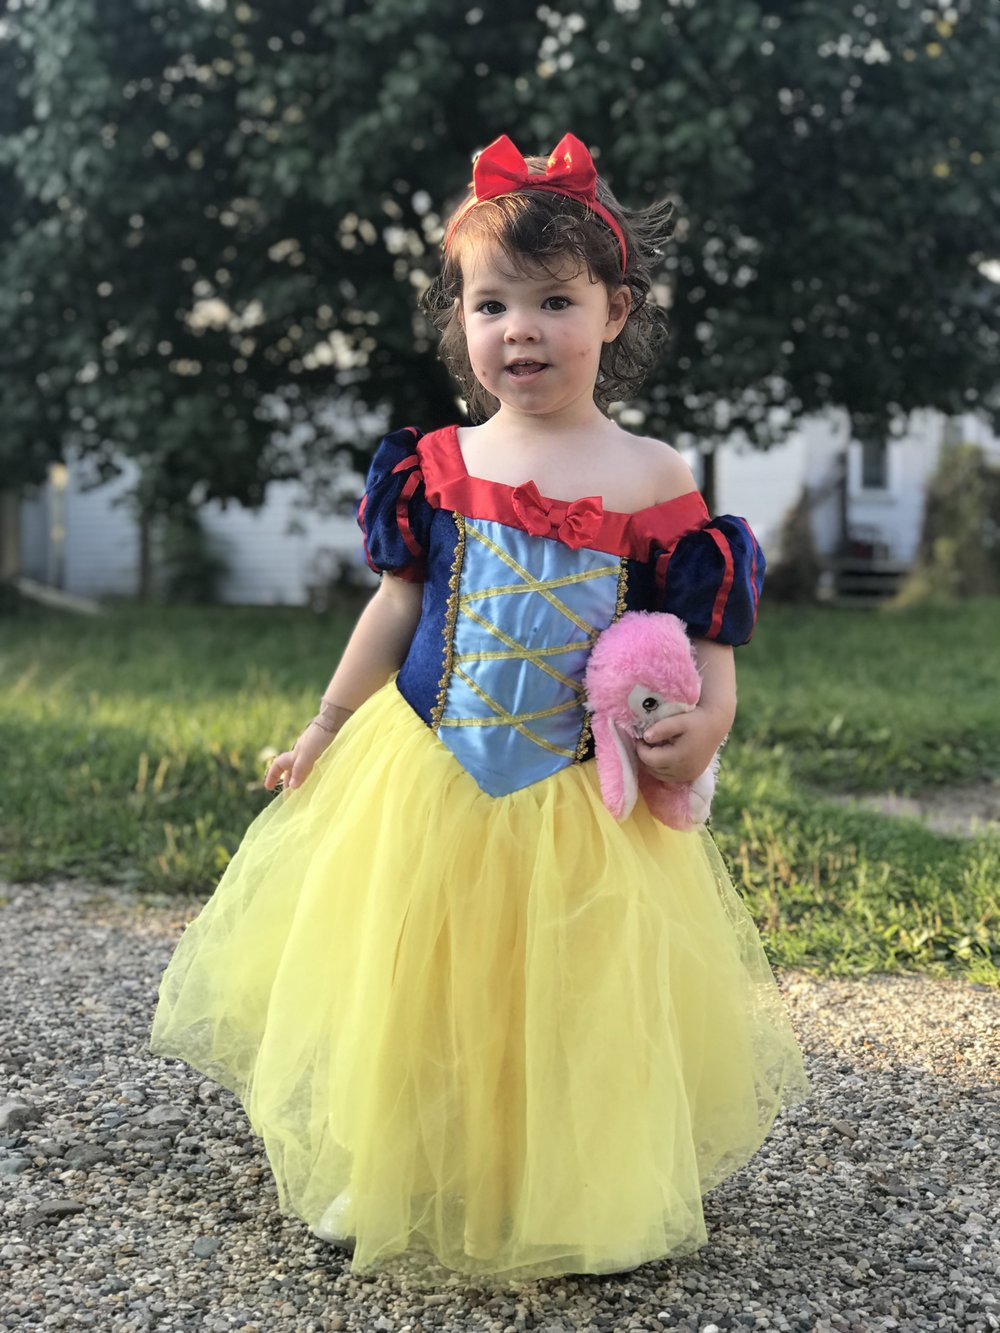 Her snow white dress, a gift for giving up her pacifier